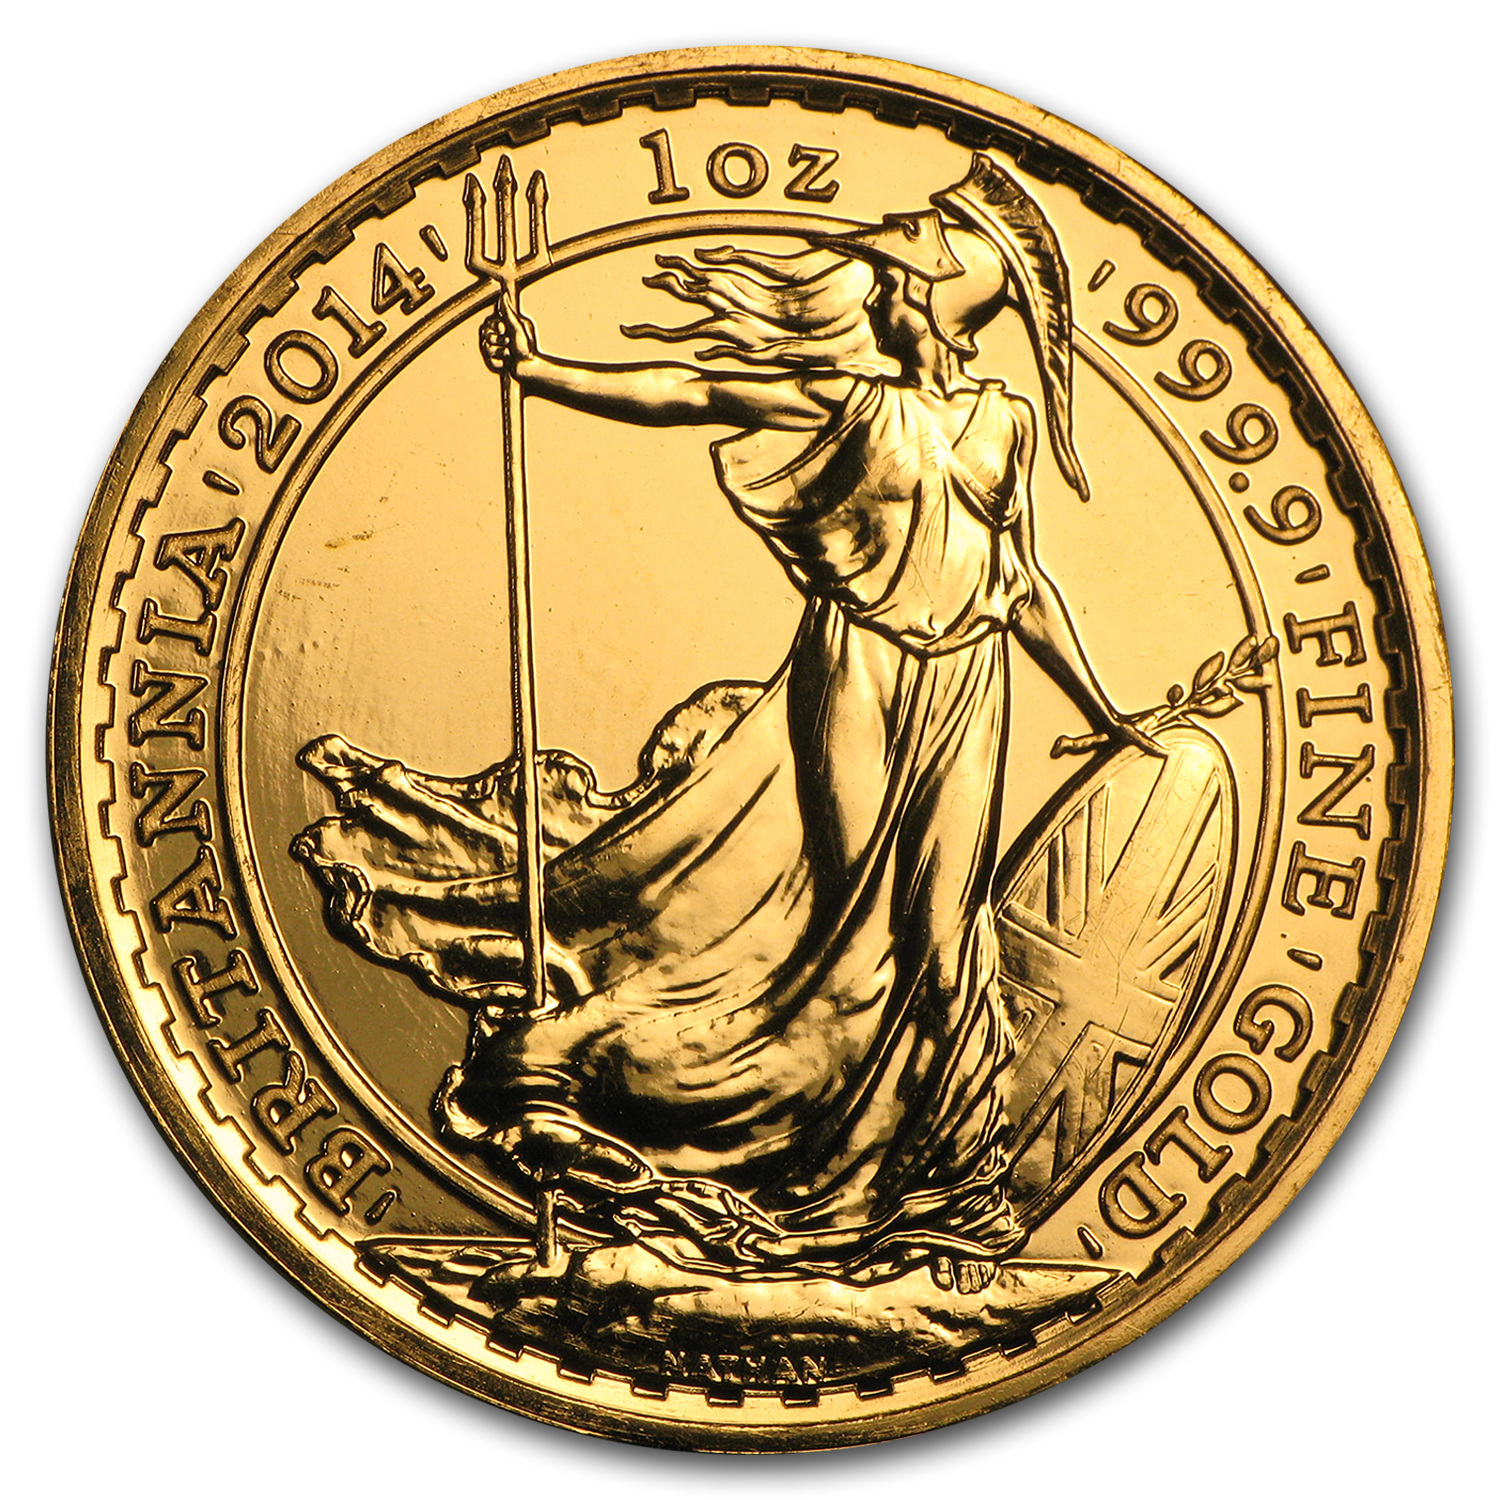 2014 Great Britain Gold 1 oz Britannia BU